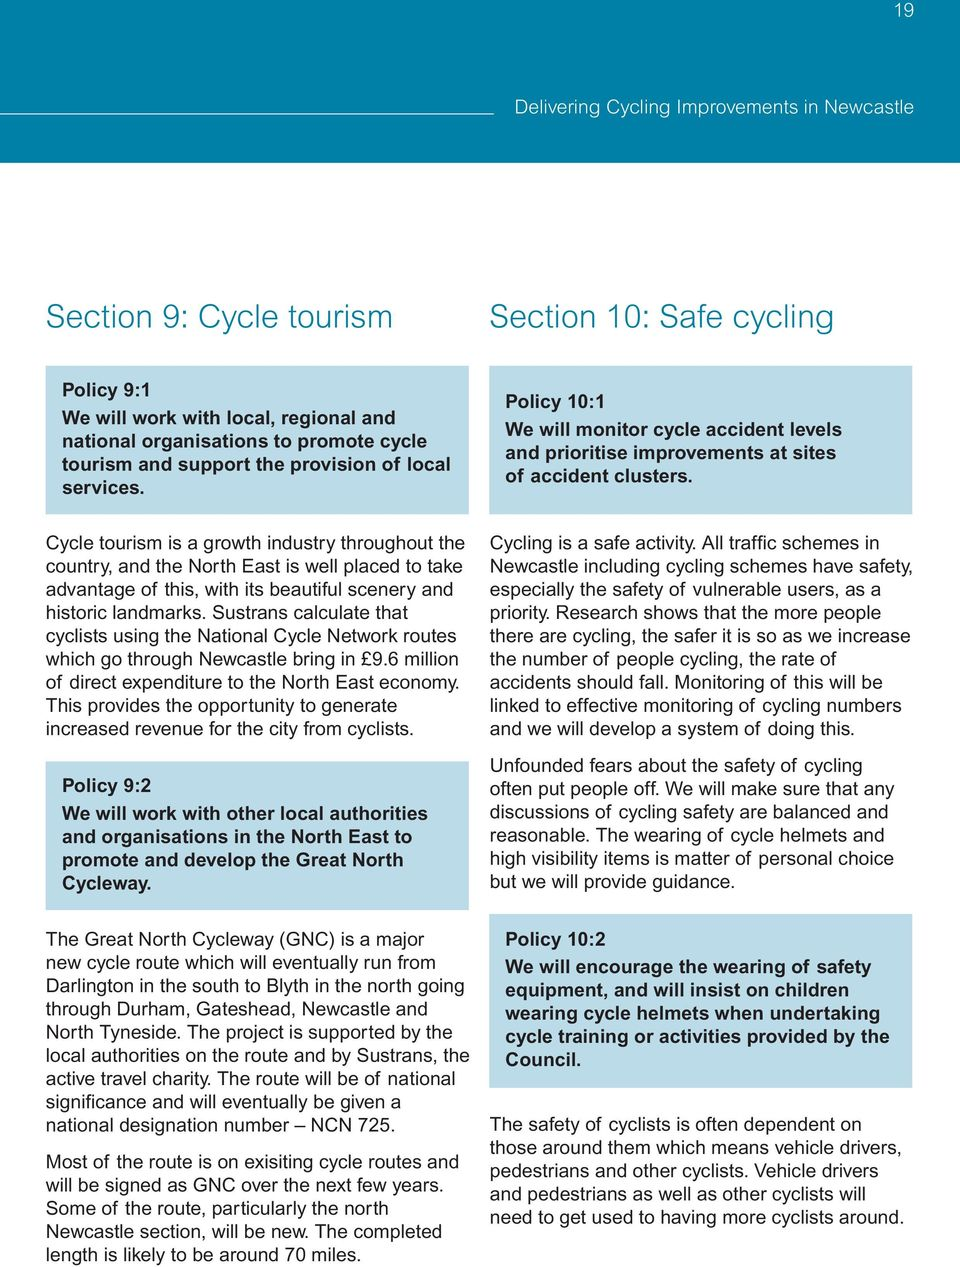 Cycle tourism is a growth industry throughout the country, and the North East is well placed to take advantage of this, with its beautiful scenery and historic landmarks.